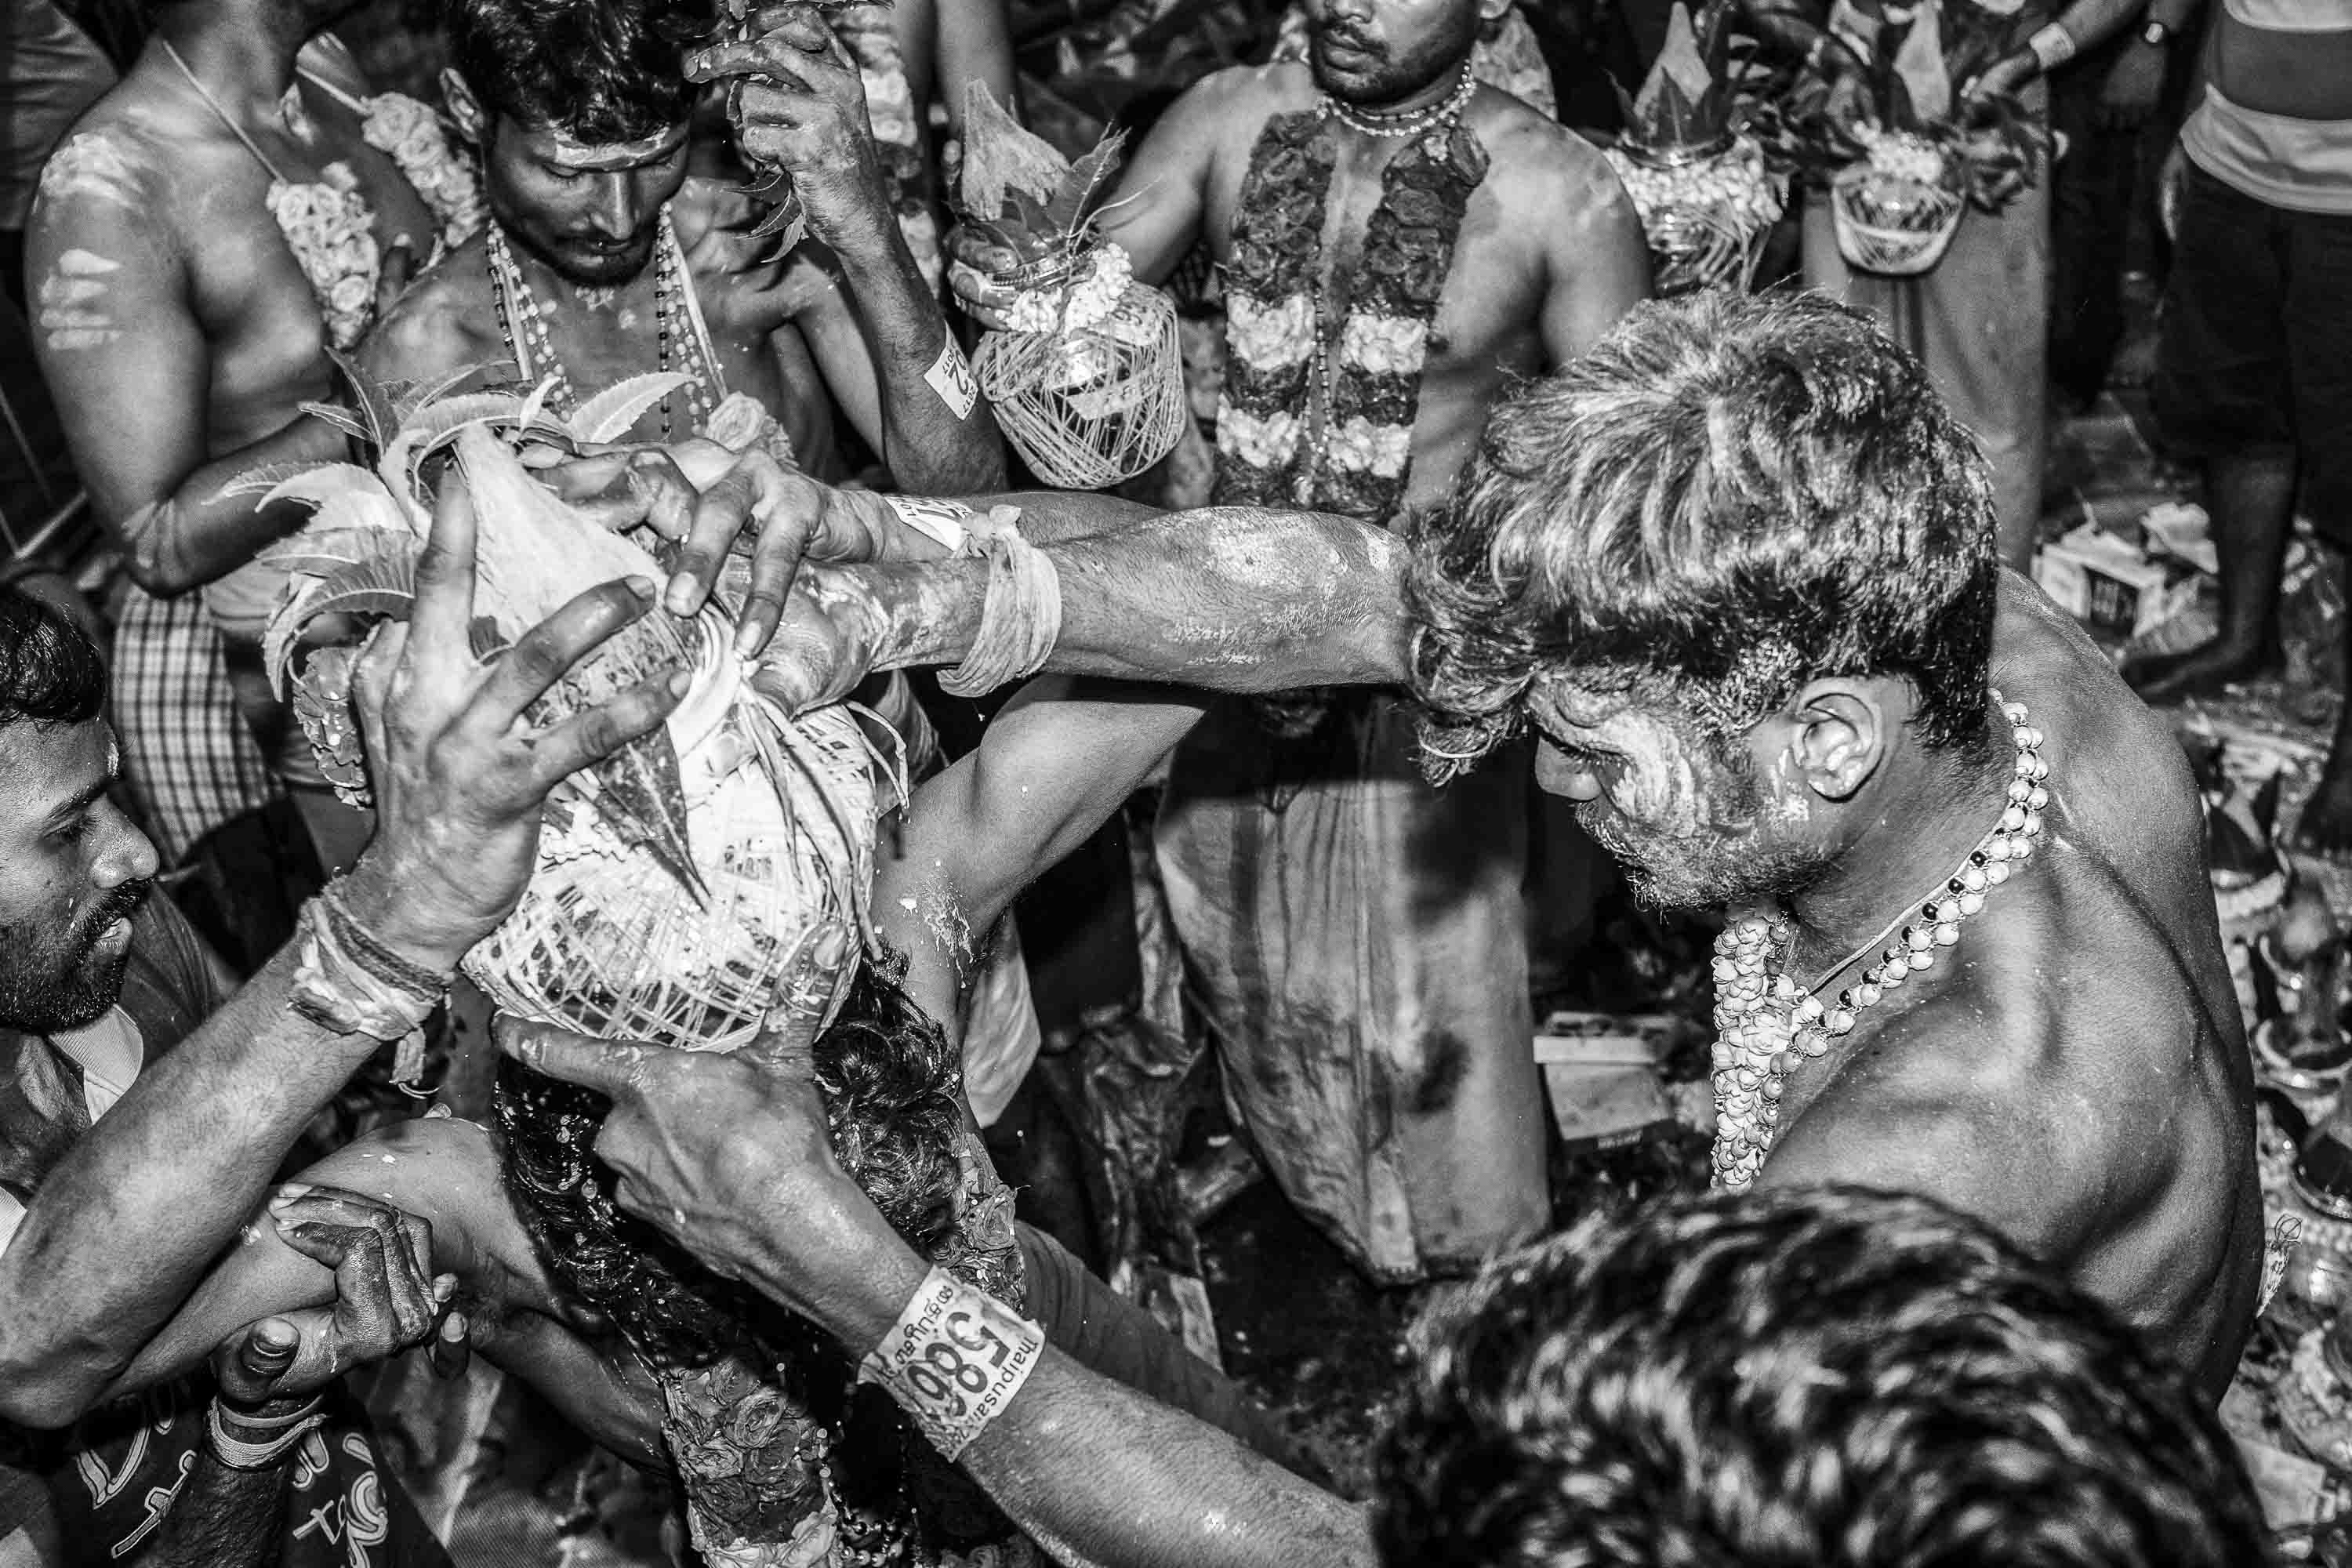 party dance ritual Little India Thaipusam Festival hindu Singapore photography jose jeuland documentary event